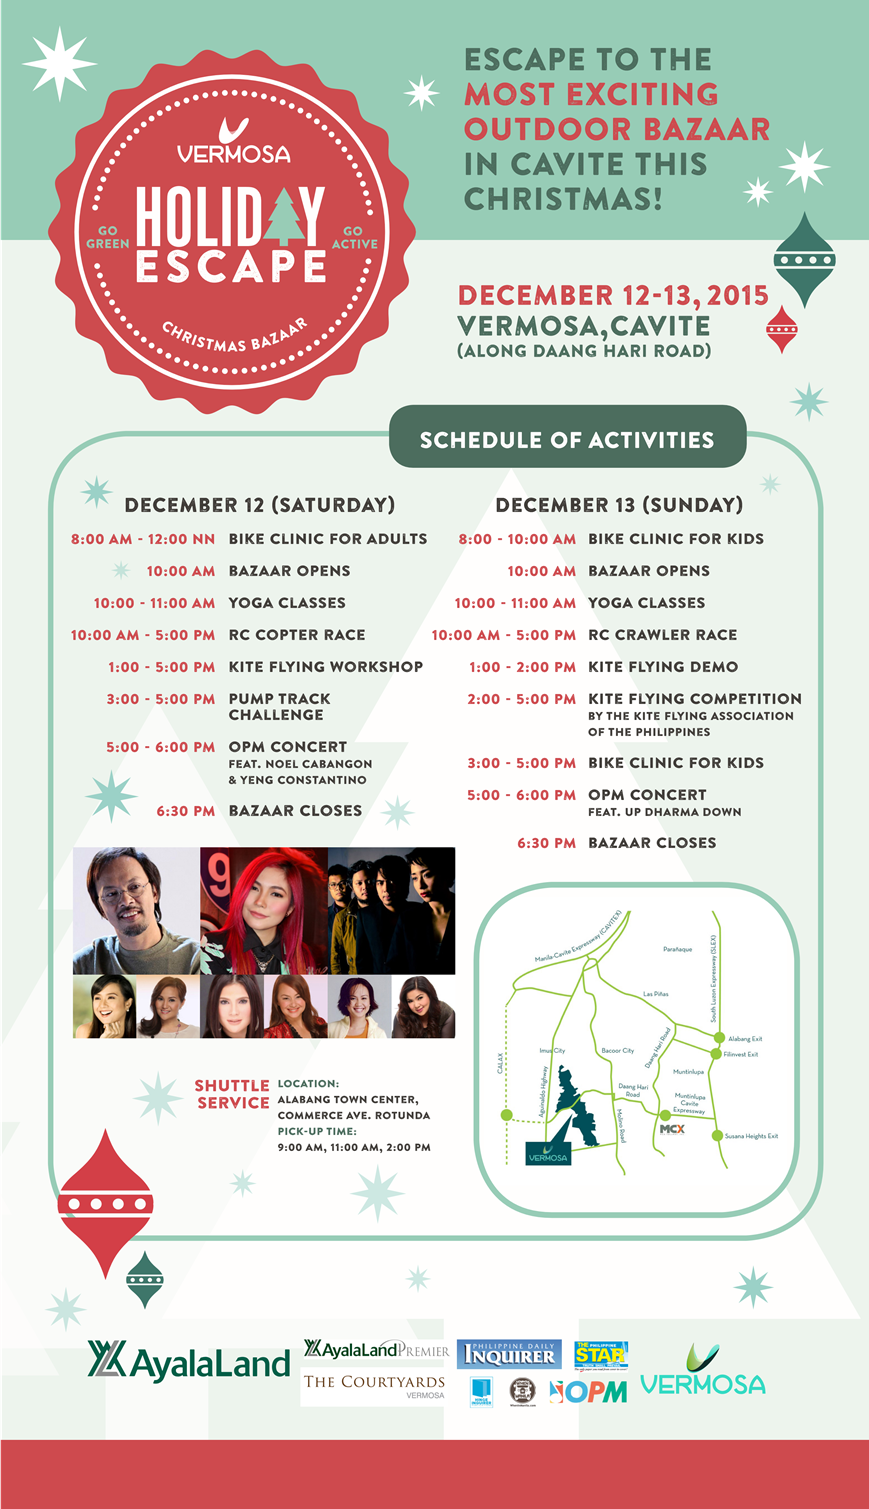 Celebrate Christmas at Vermosa Holiday Escape - Recycle Bin of a ...